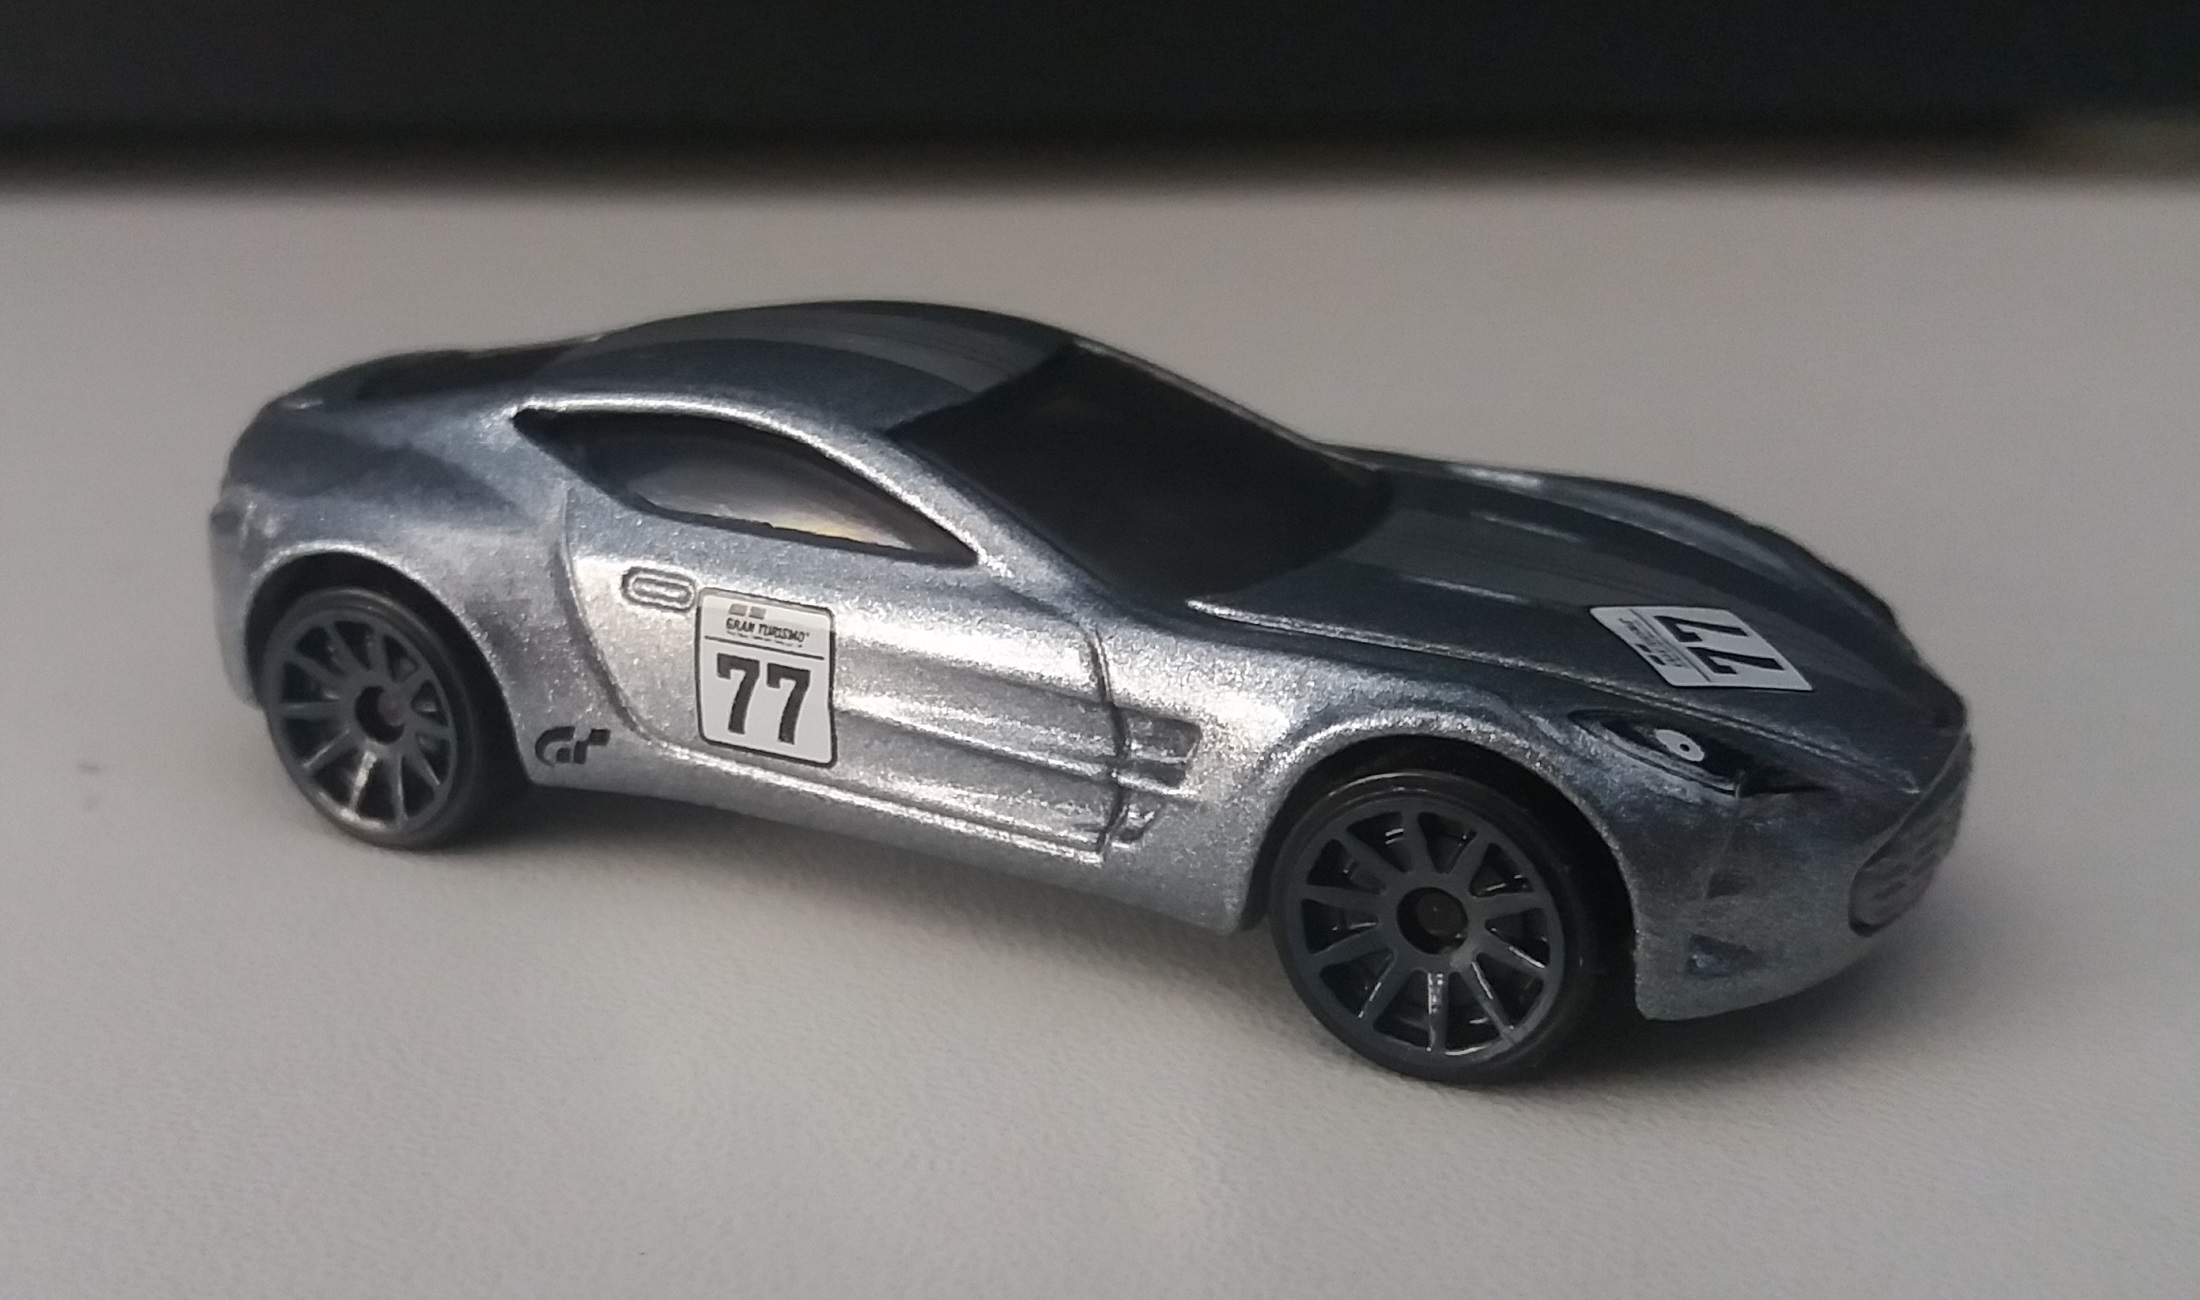 Aston Martin e 77 Hot Wheels Wiki